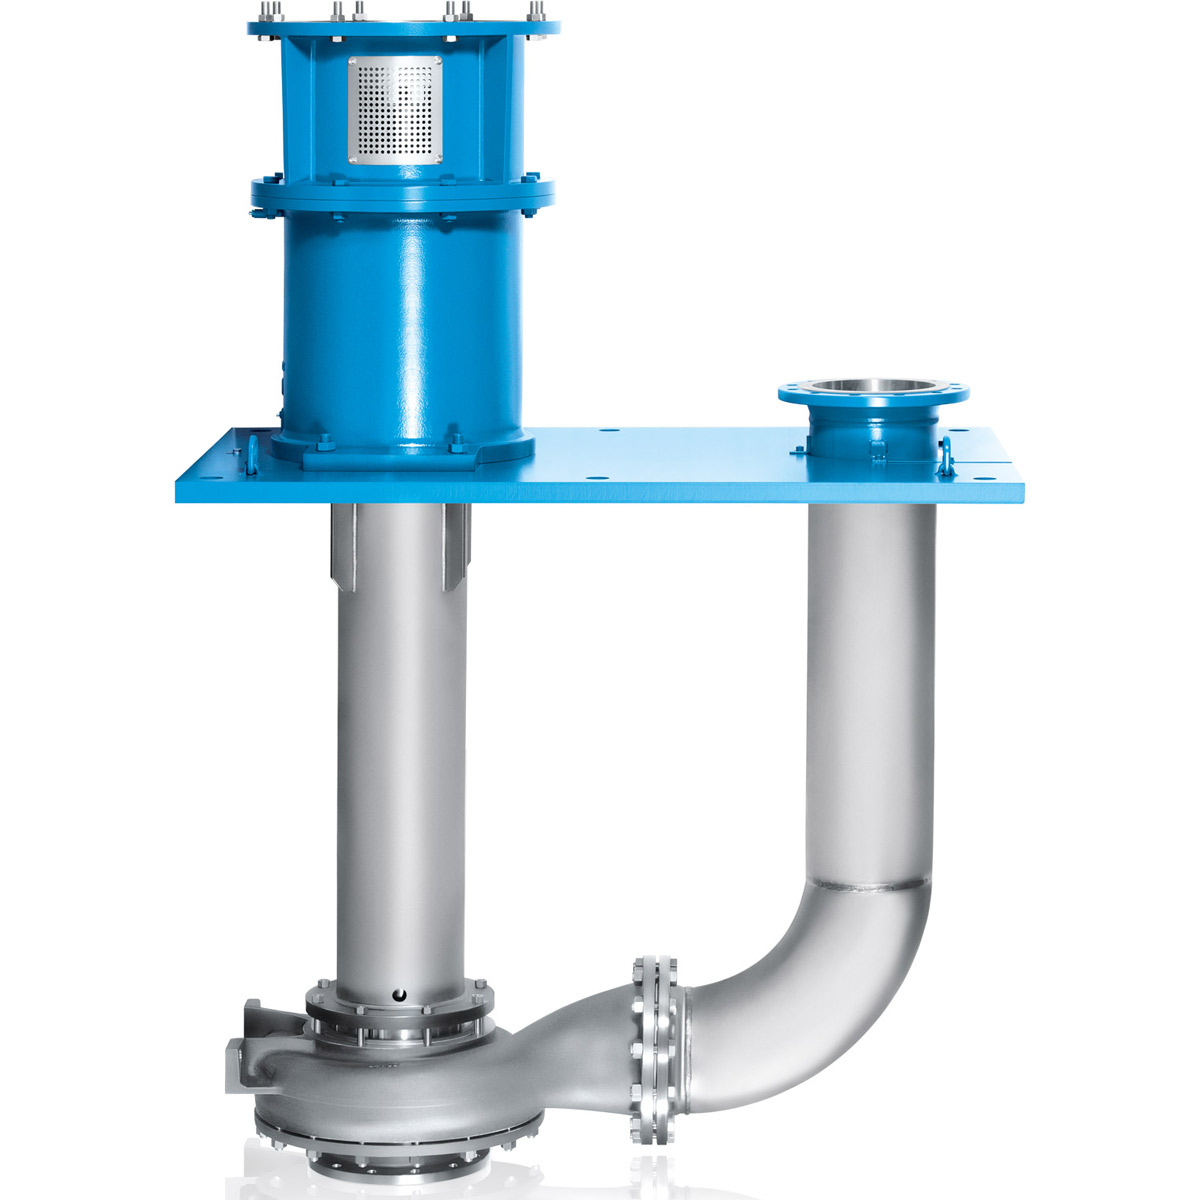 Material Metal Design Pumps for applications according to API 610 (ISO 13709SizeDN 32 - DN 300Delivery rateQmax. = 600 m3/hDelivery headHmax. = 80 mDepthup to 2 mTemperature-40 °C to +200 °CNominal pressure10 bar